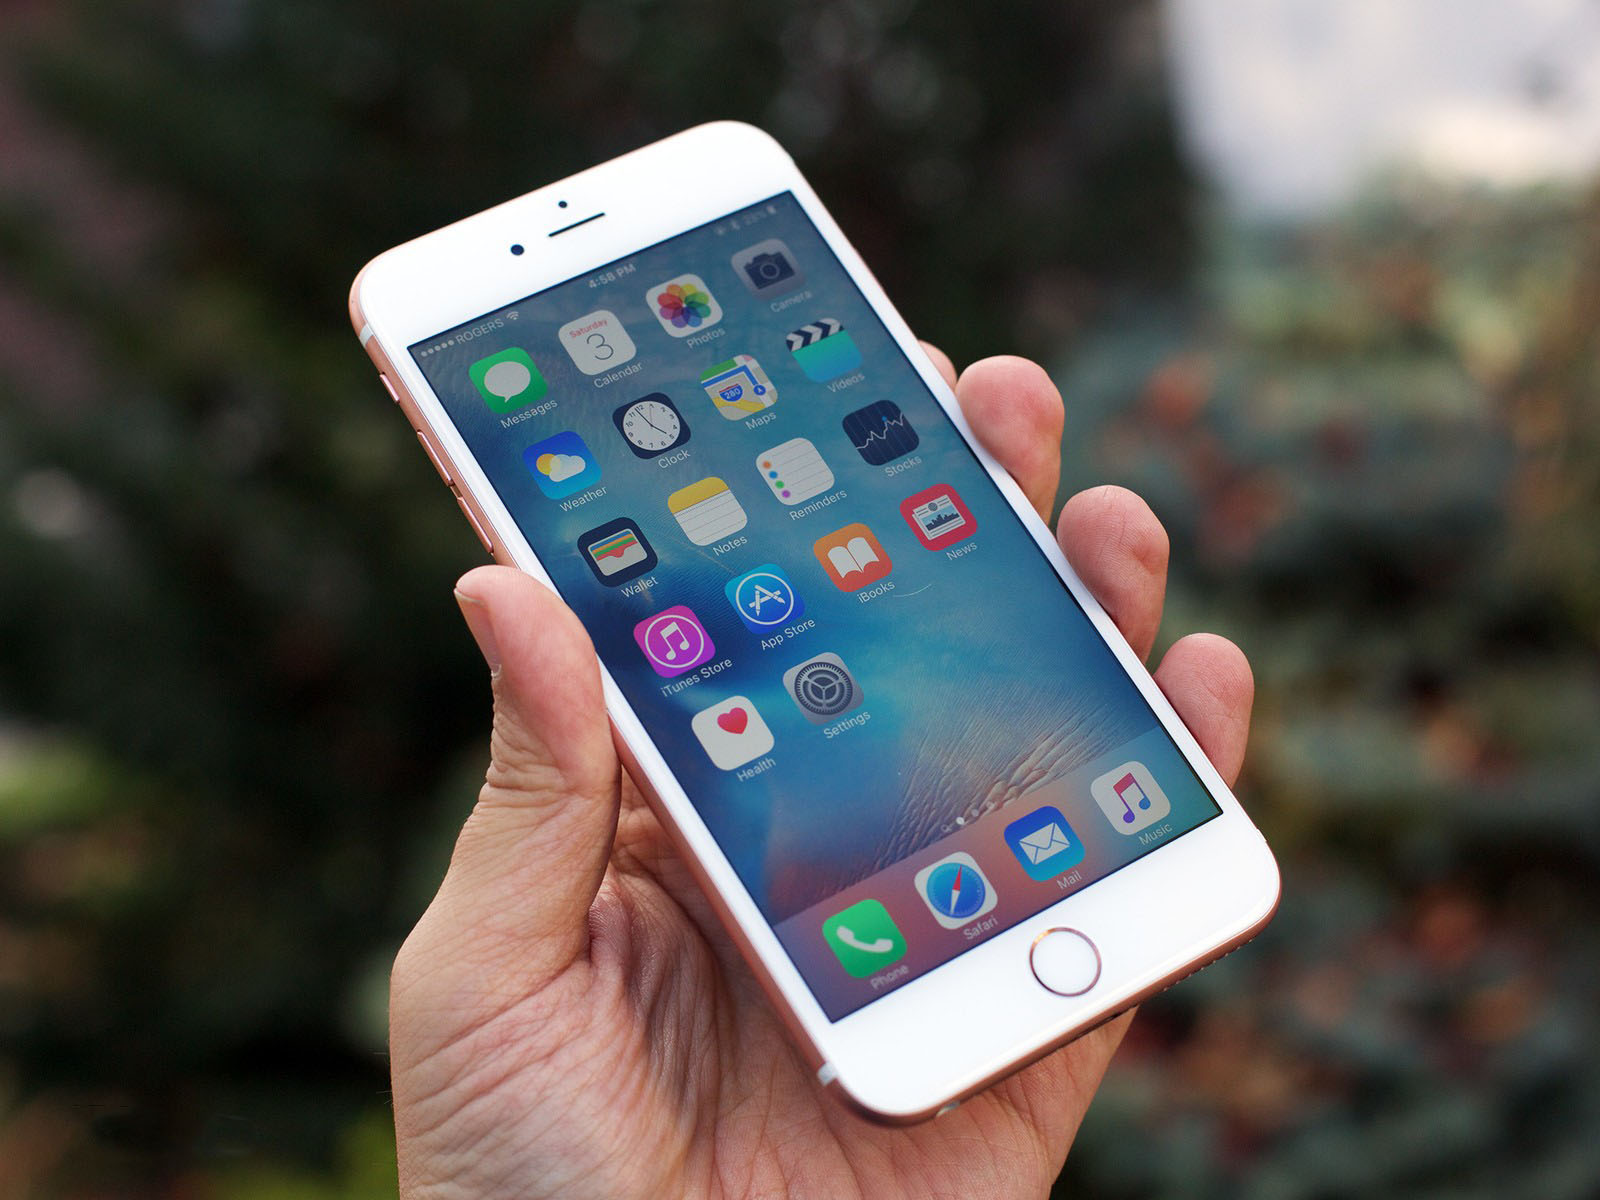 Apple Trialing iPhone 6s Plus Production in India in Bid to Cut Costs